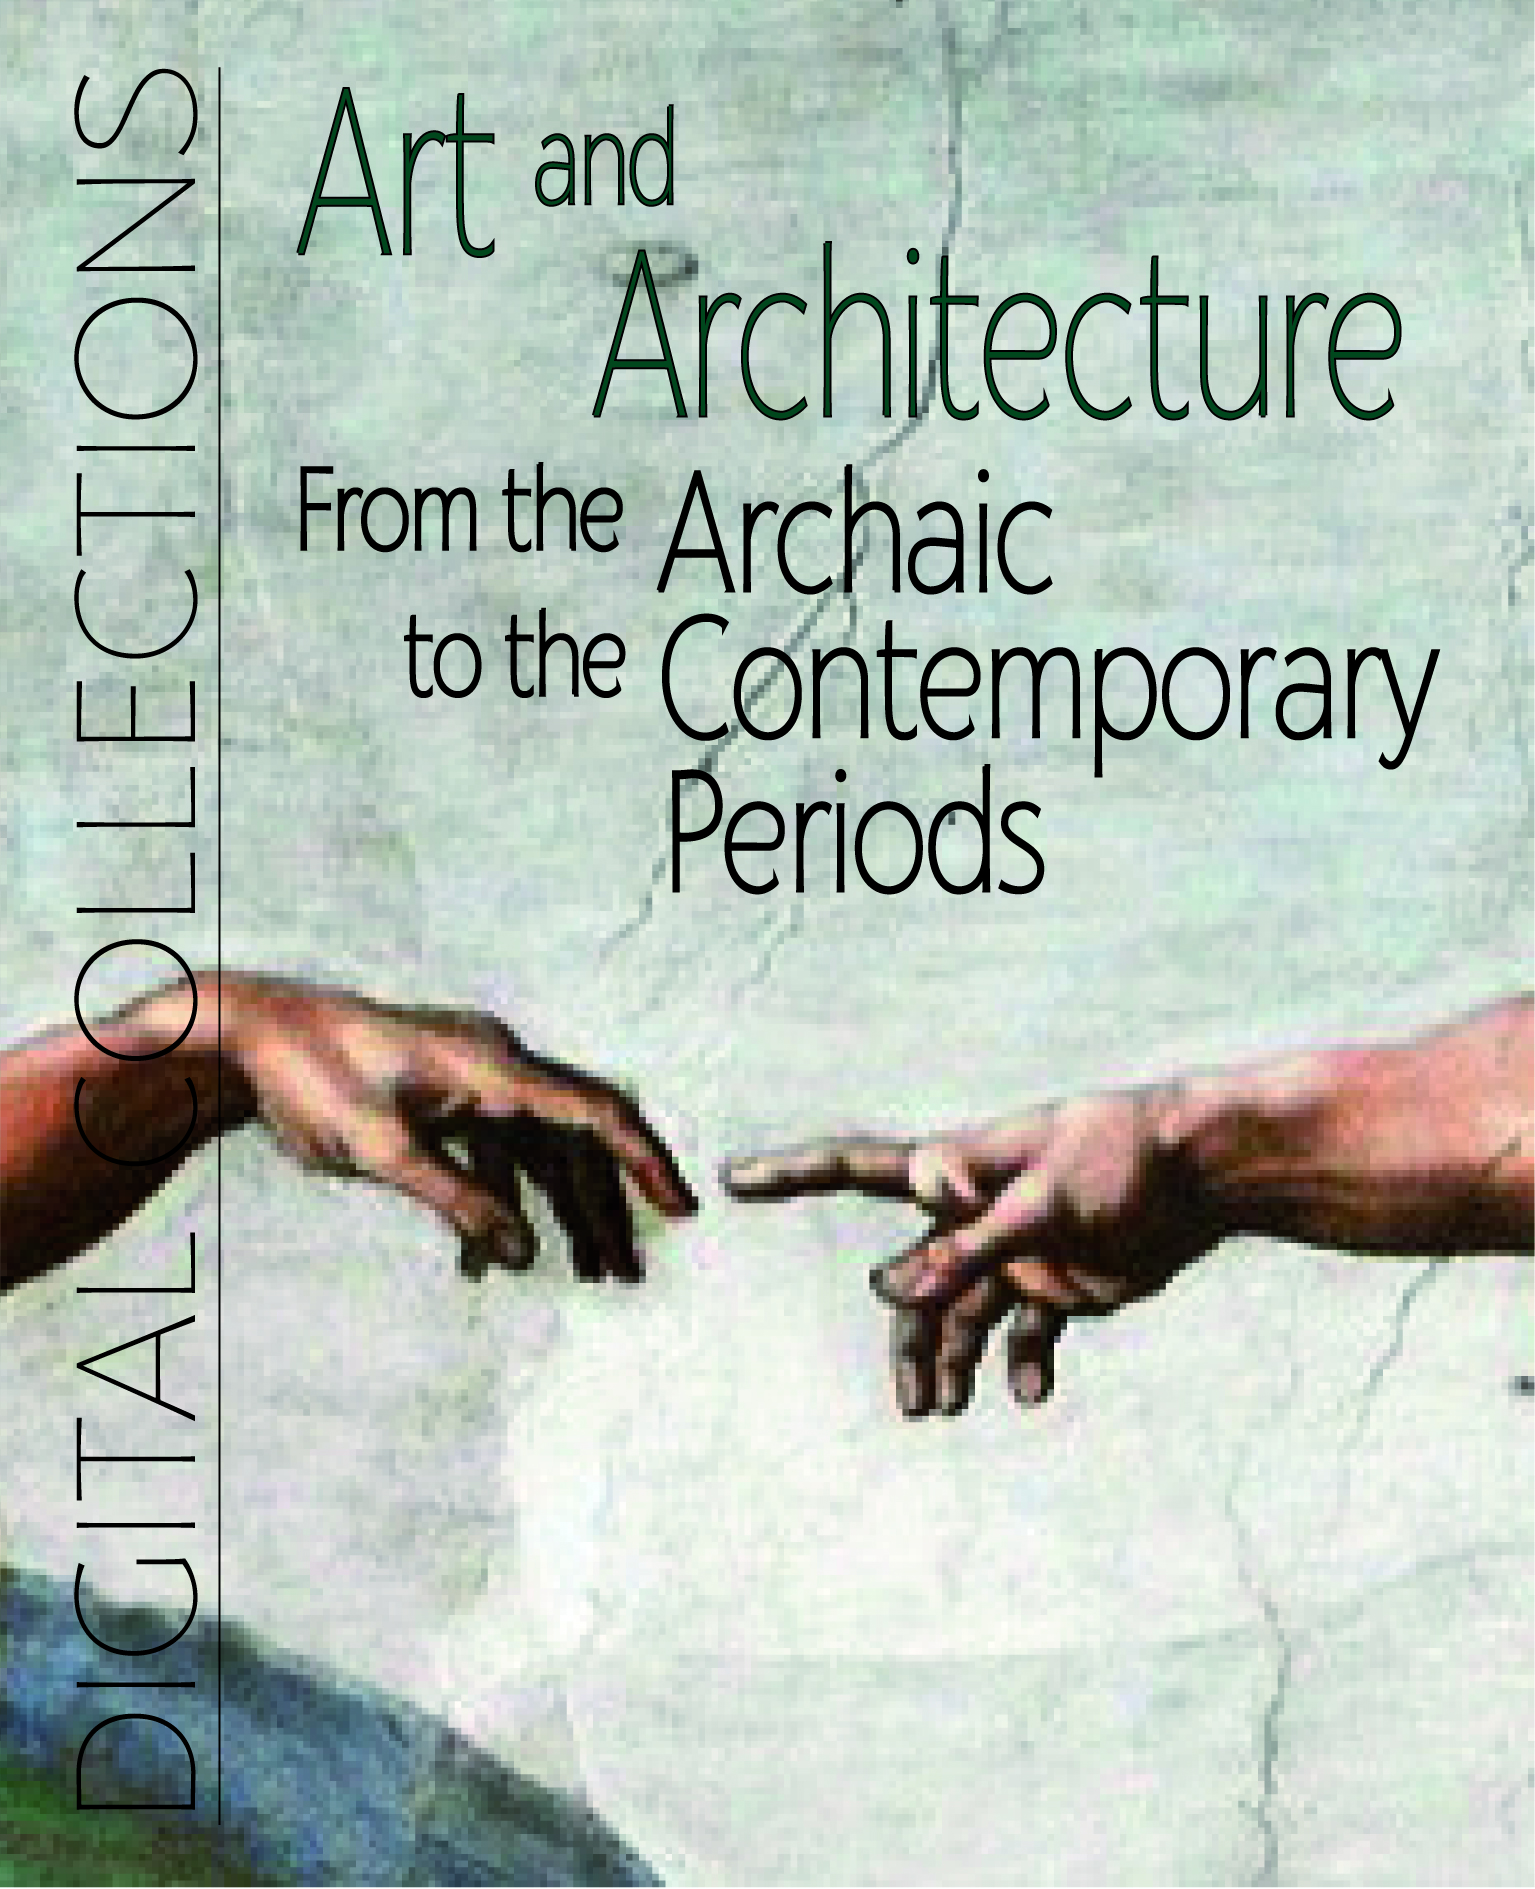 Art and Architecture: From Archaic to the Contemporary Periods